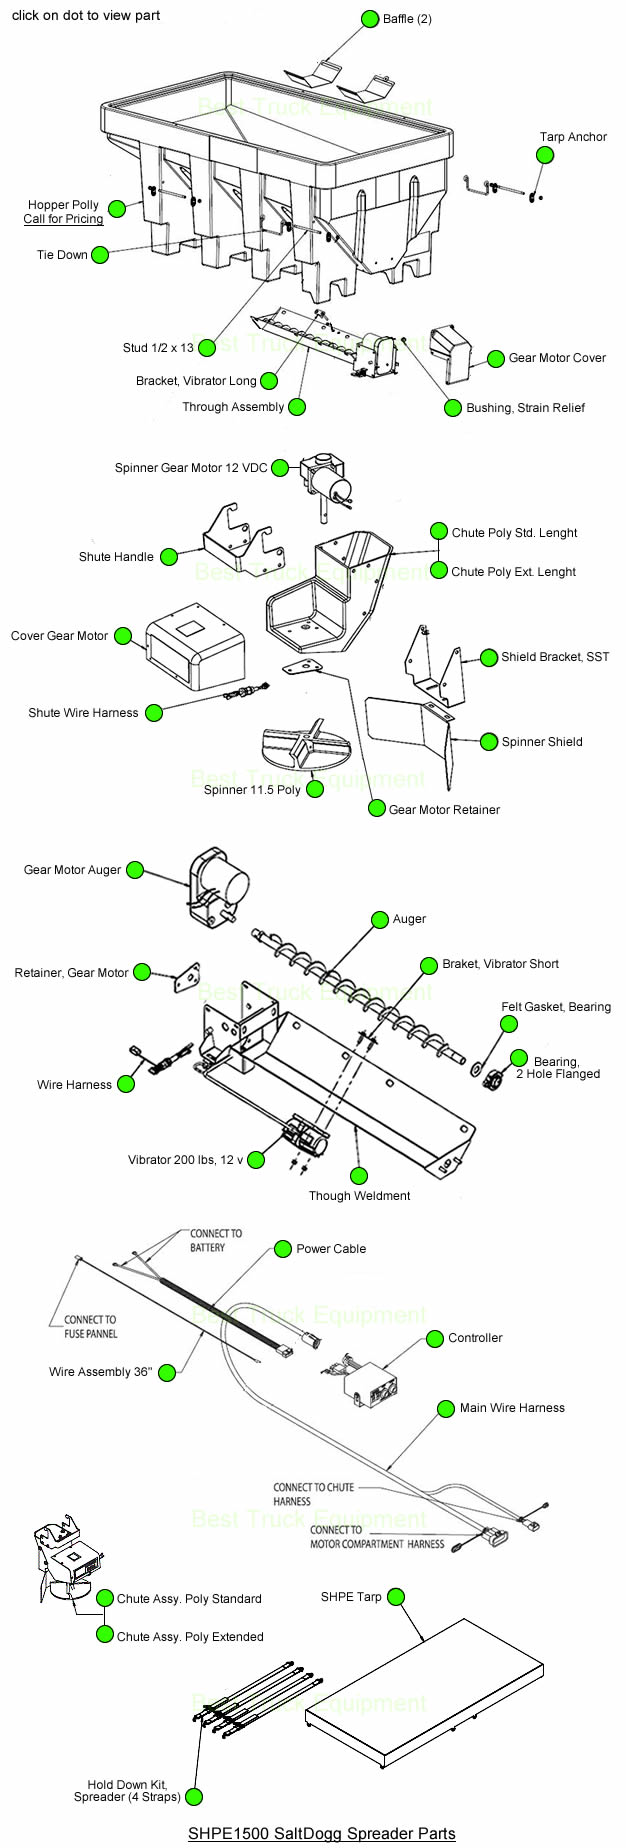 truck to trailer wiring diagram 7 pin socket uk saltdogg shpe2000 buyers salt spreader parts by part look up